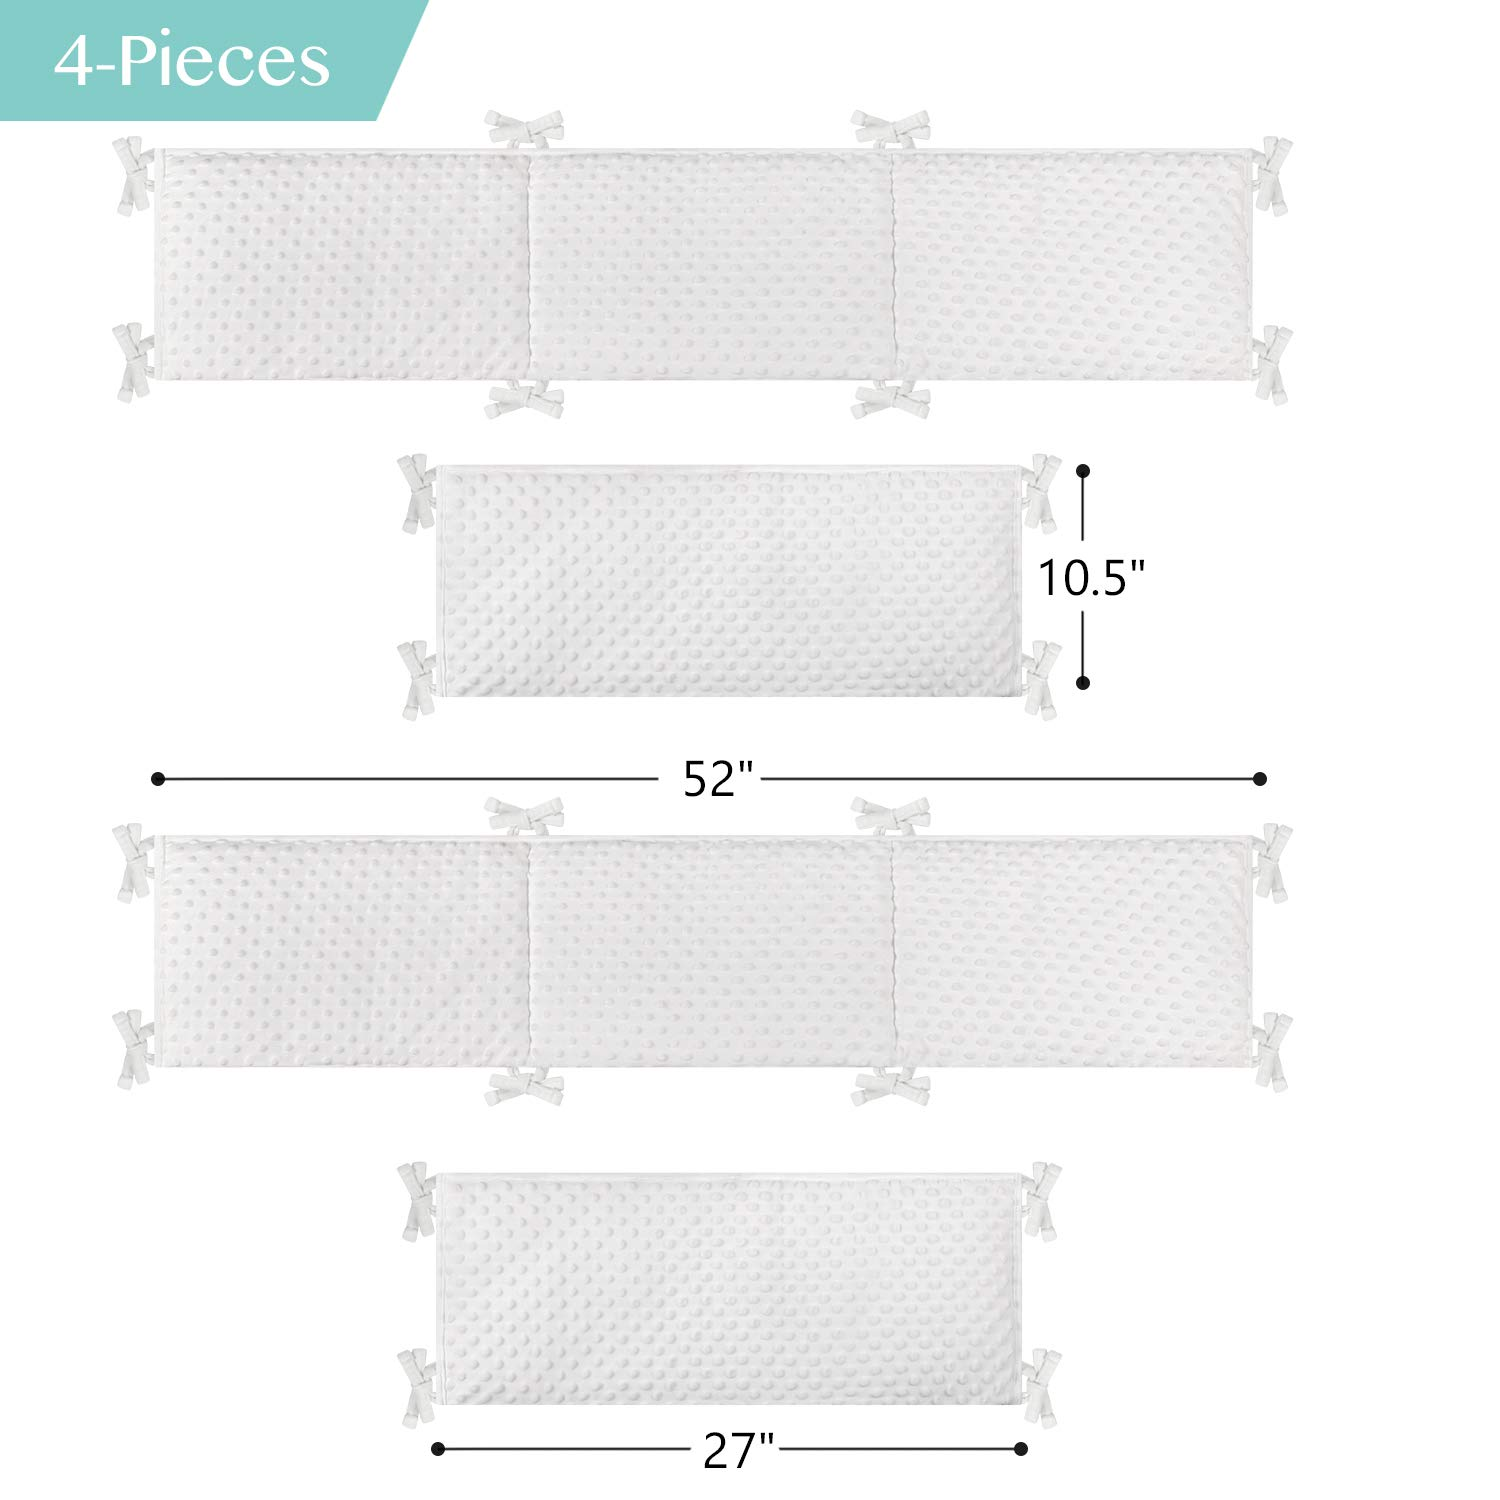 Machine Washable Thick Plush Crib Cushion for Winter Ultra Soft Warm Padding for Nursery Bed Cream TILLYOU Baby Safe Minky Dot Crib Liner Protector for Standard Cribs 4-Piece Pillow de Cuna